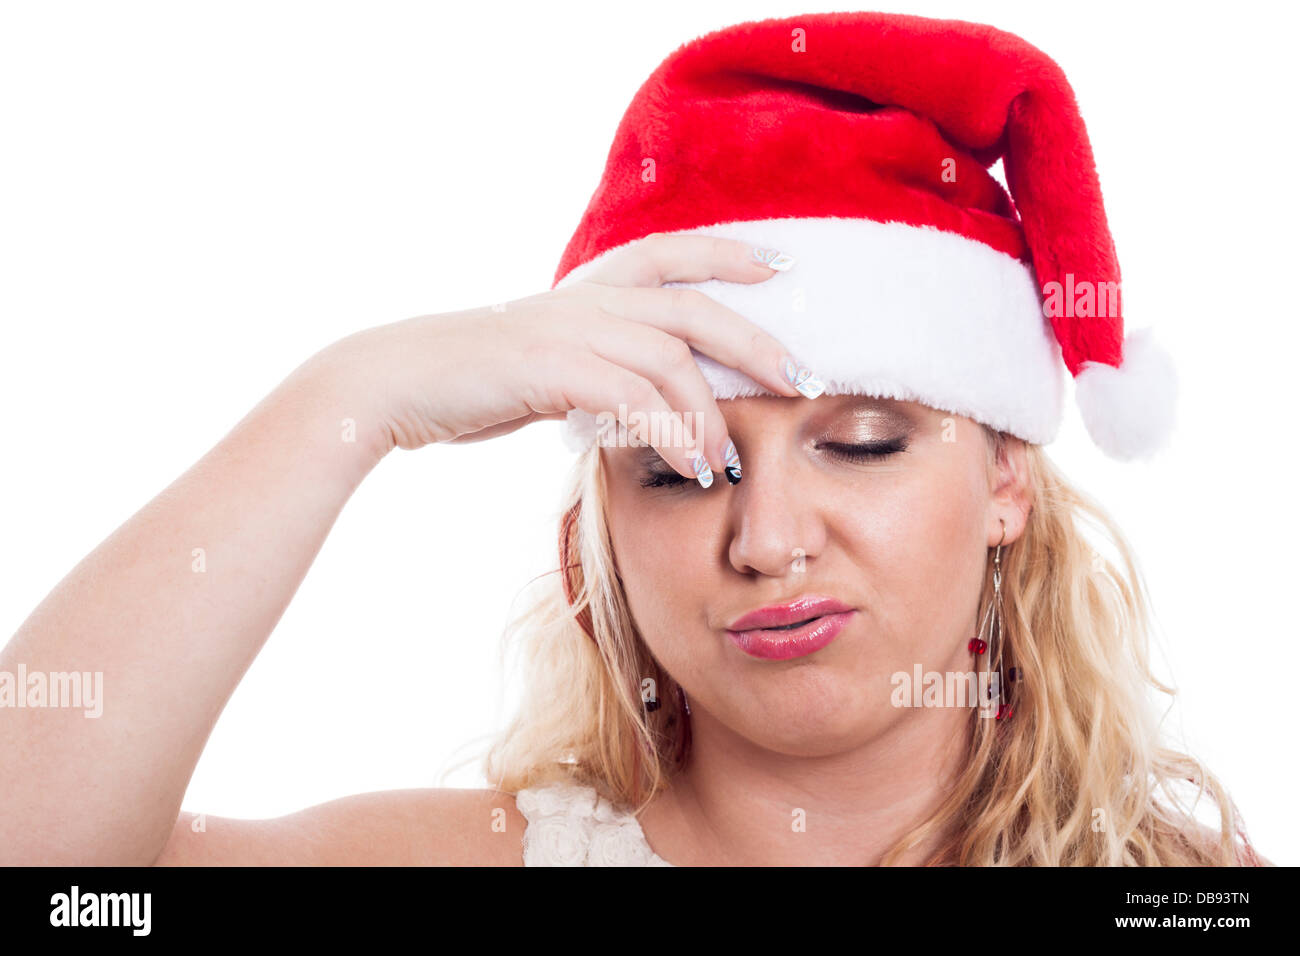 Stressed woman in Christmas hat, isolated on white background. - Stock Image